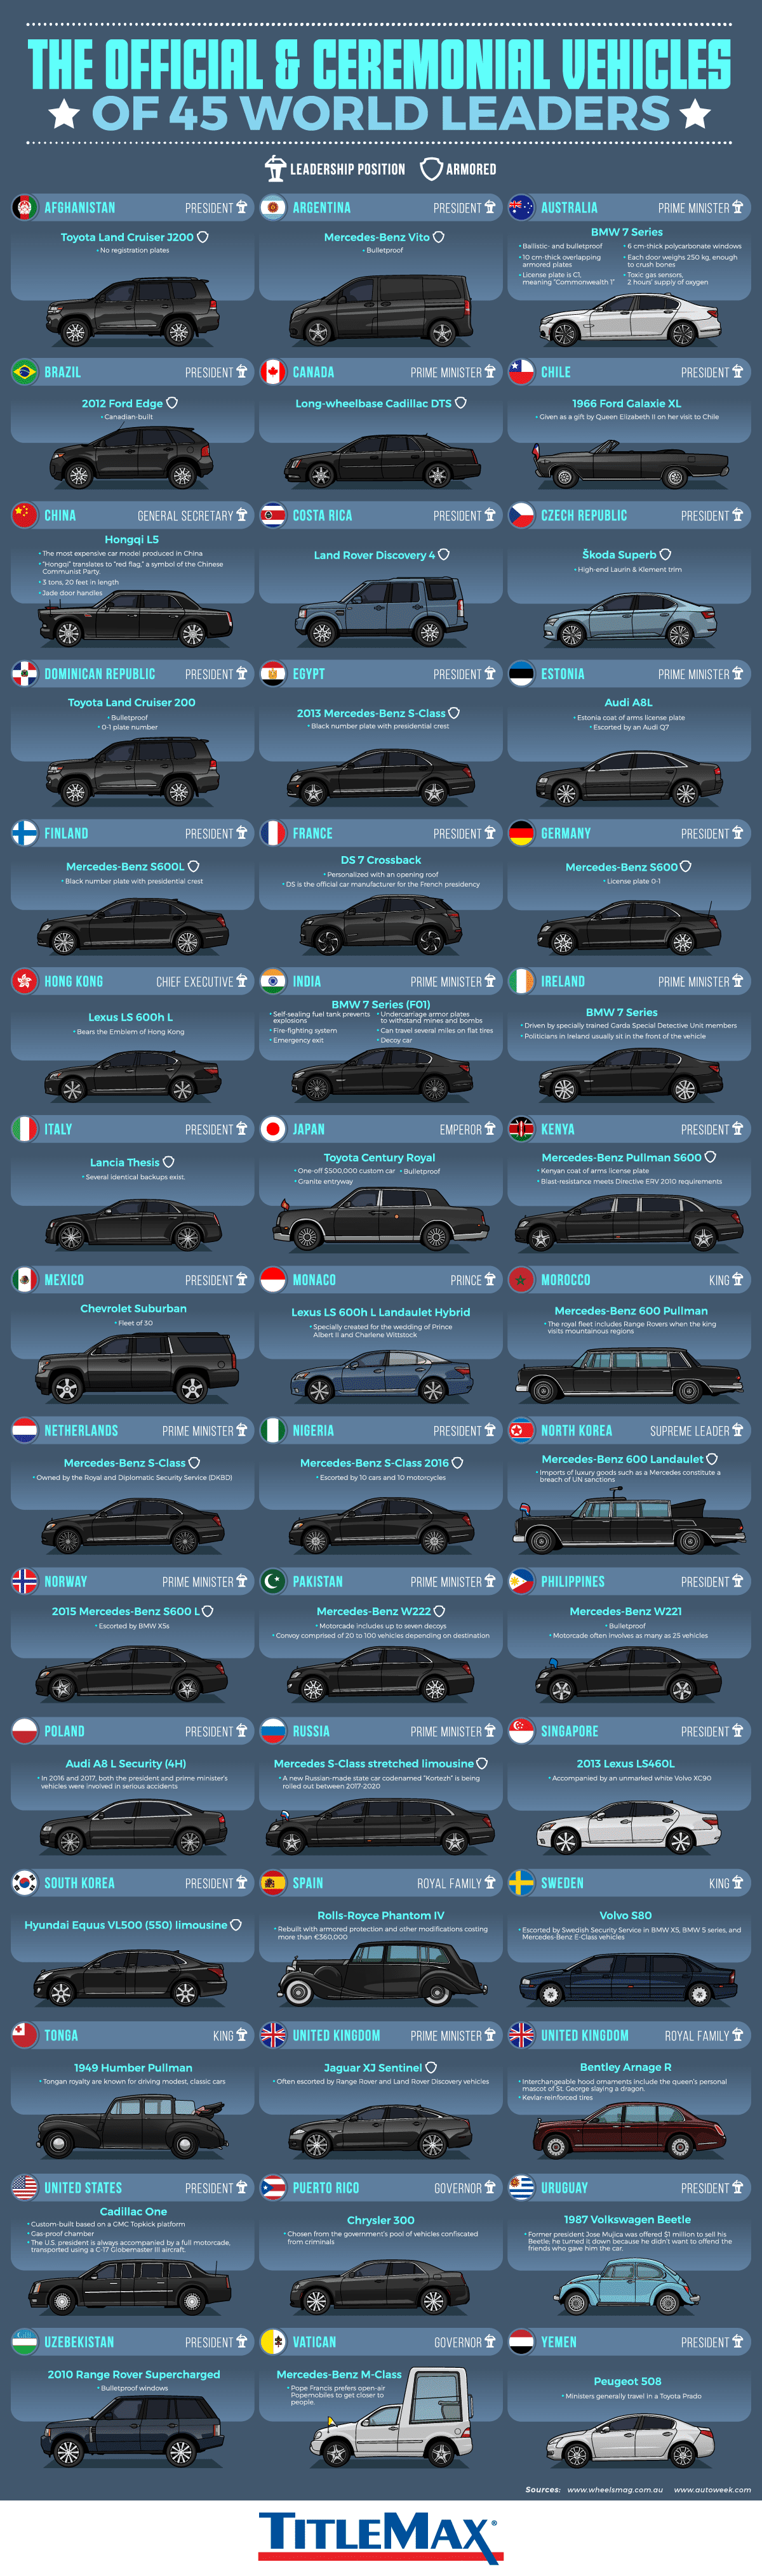 The Official and Ceremonial Vehicles of World Leaders Around the World #infographic